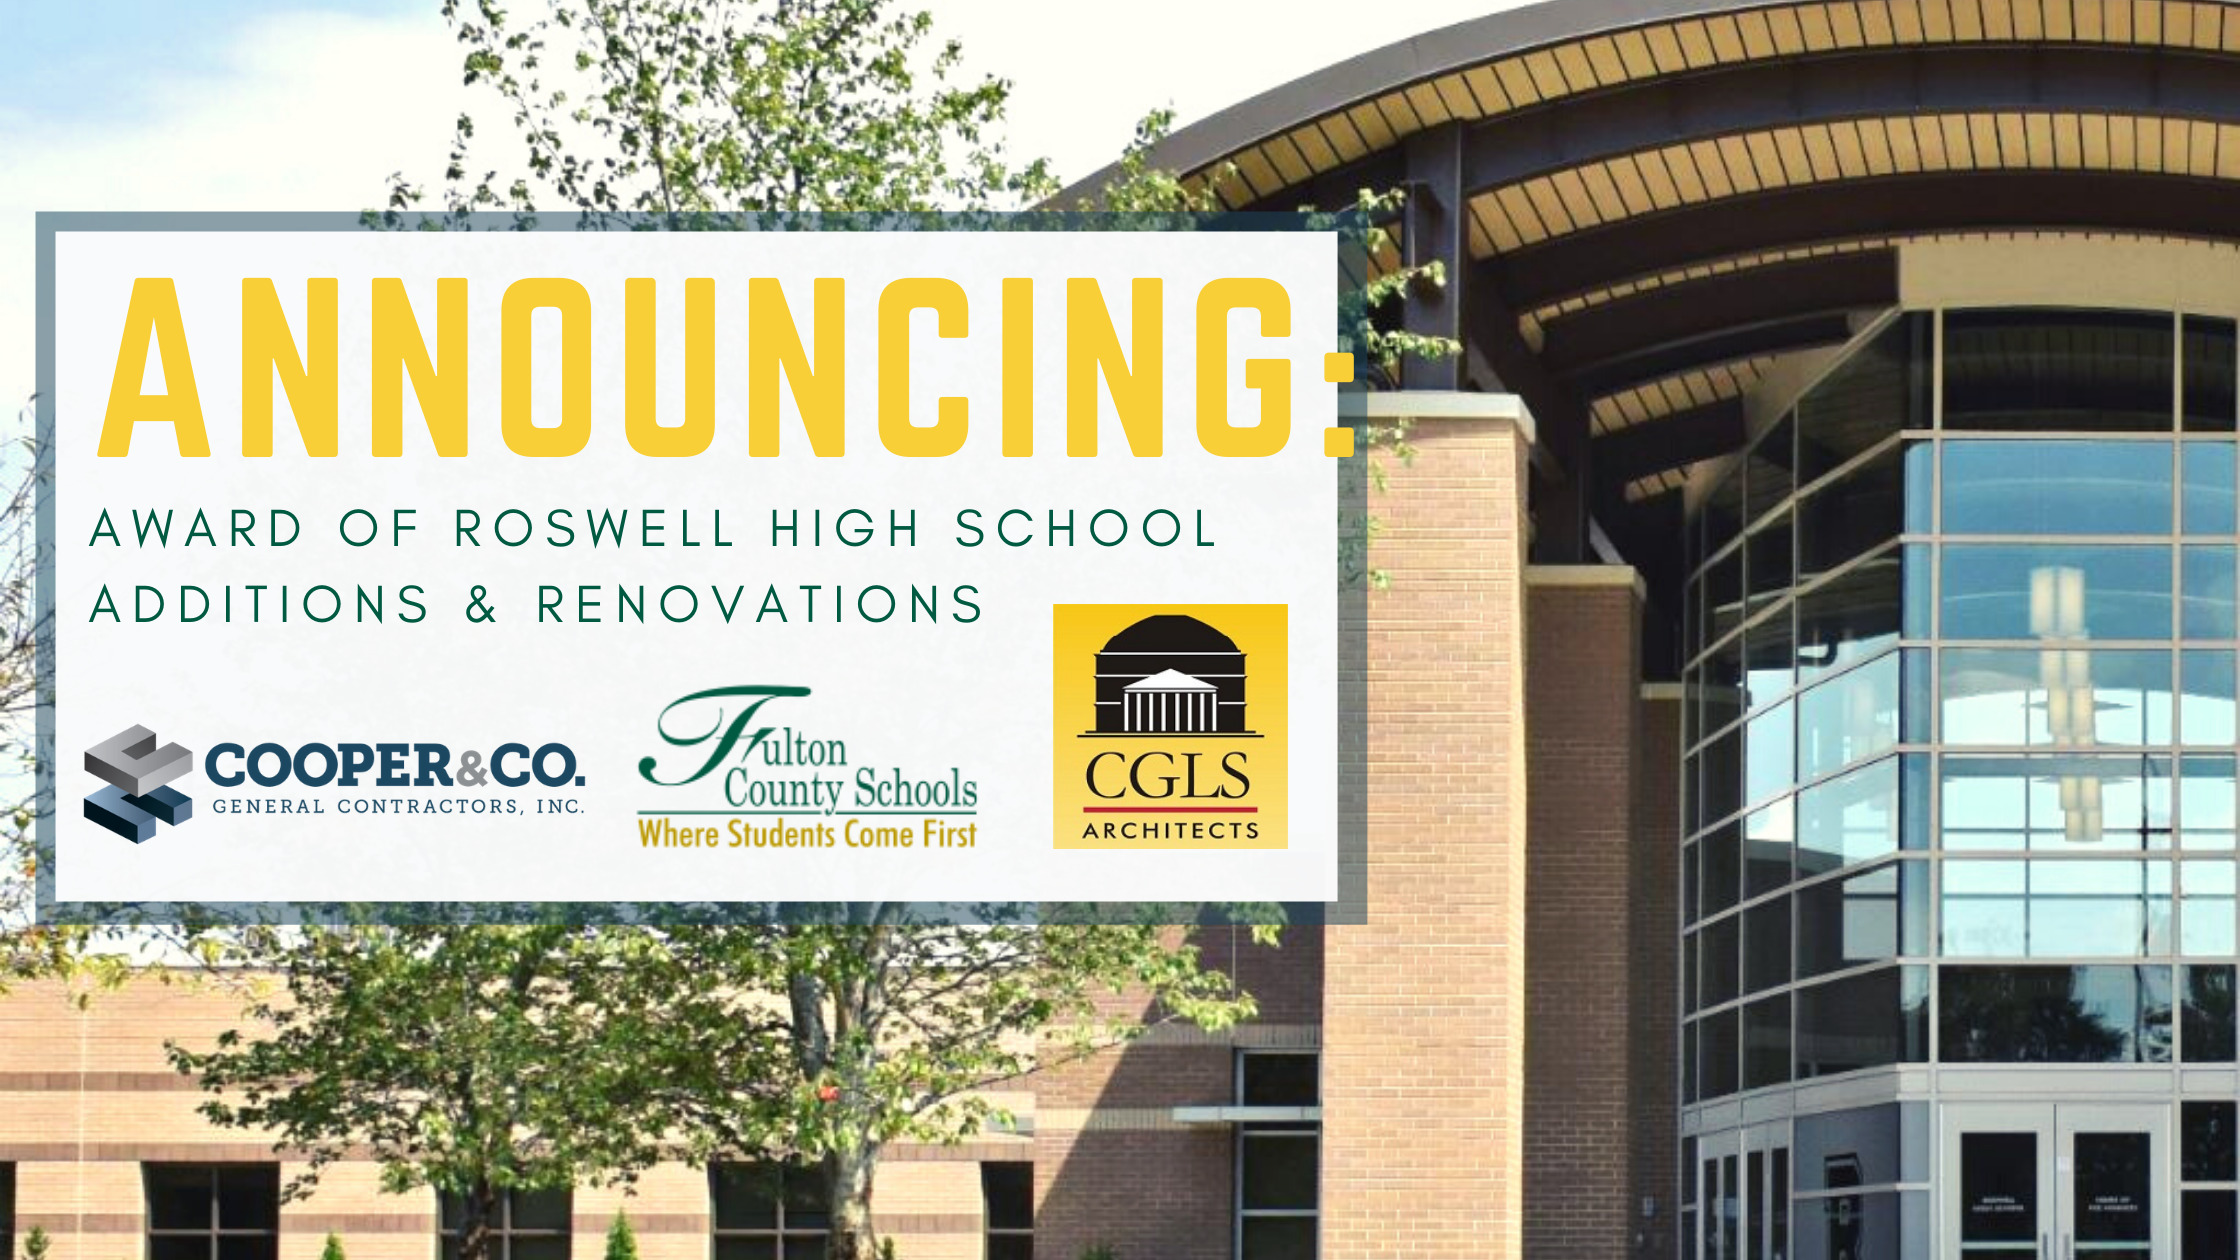 Announcing Roswell High School Renovations | Cooper & Company General Contractors